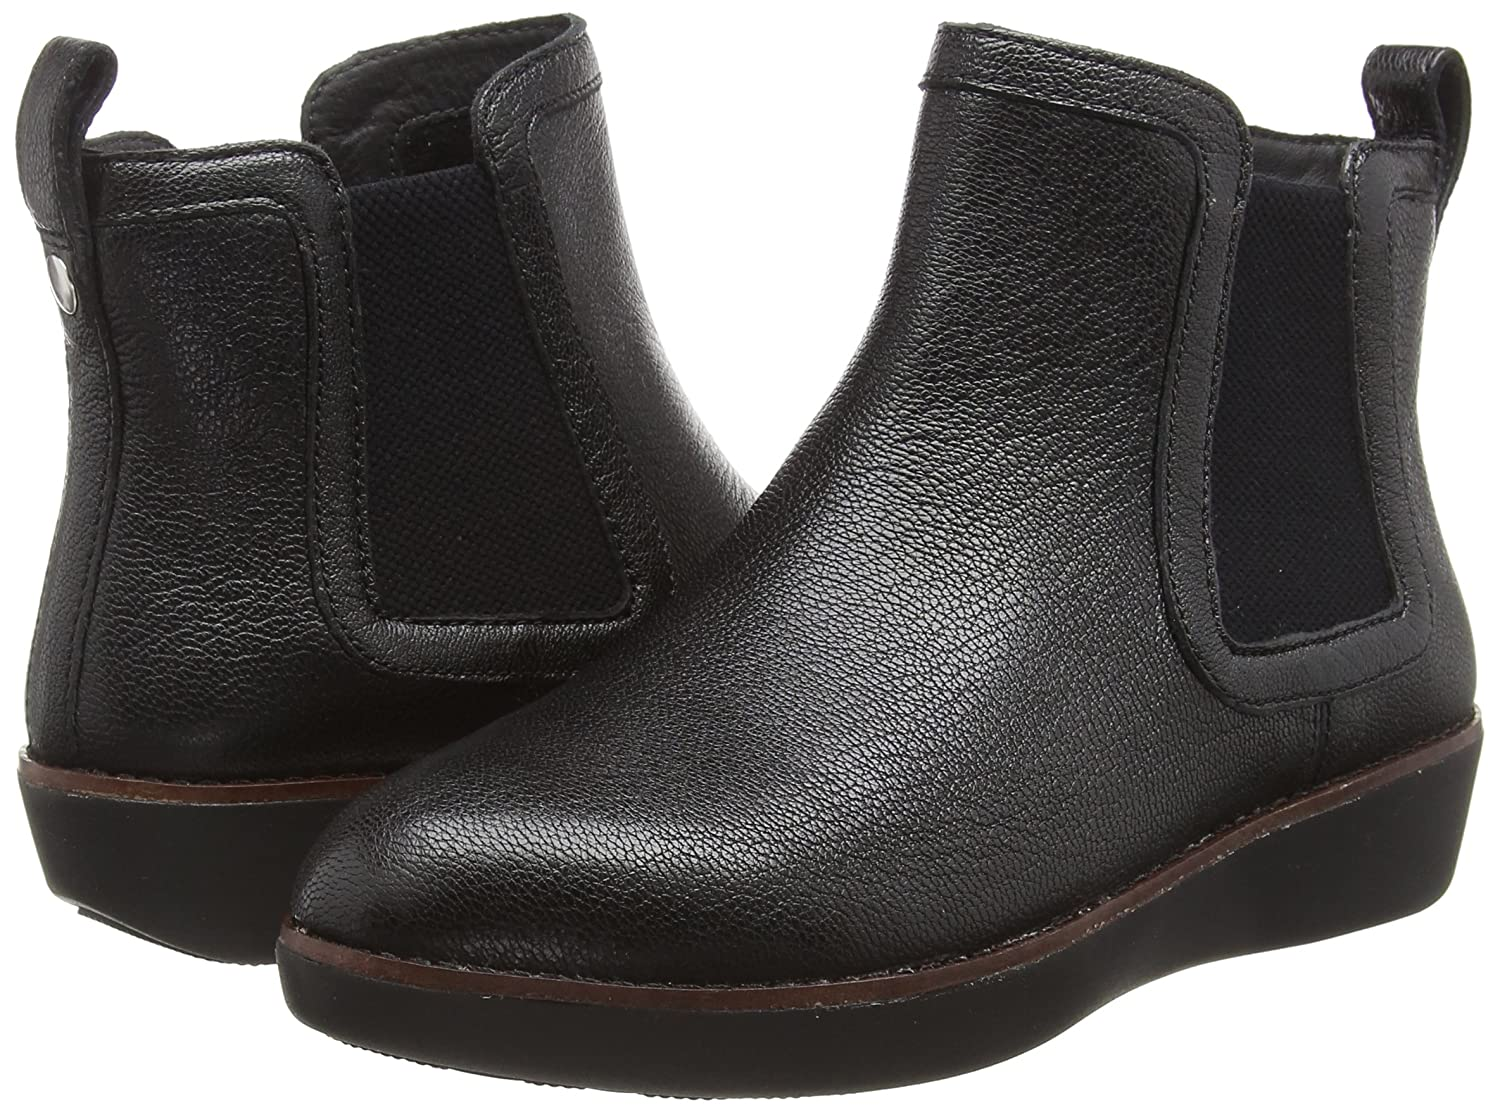 FitFlop Trade; Chai™ Leather Chelsea Boots B0792L54YD 11 B(M) US|Black